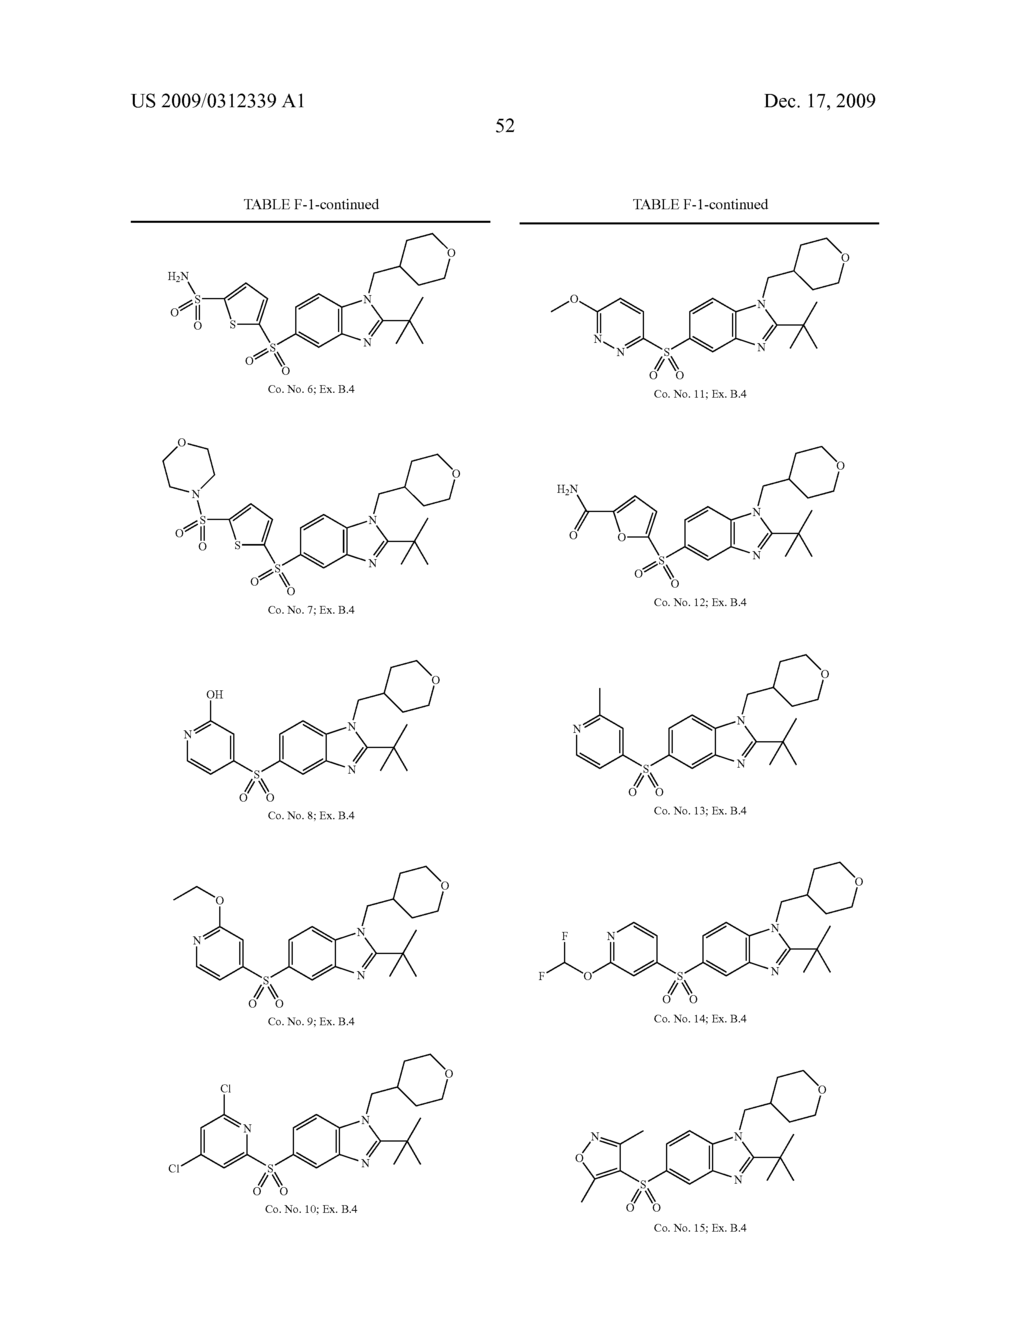 BENZIMIDAZOLE CANNABINOID AGONISTS BEARING A SUBSTITUTED HETEROCYCLIC GROUP - diagram, schematic, and image 53